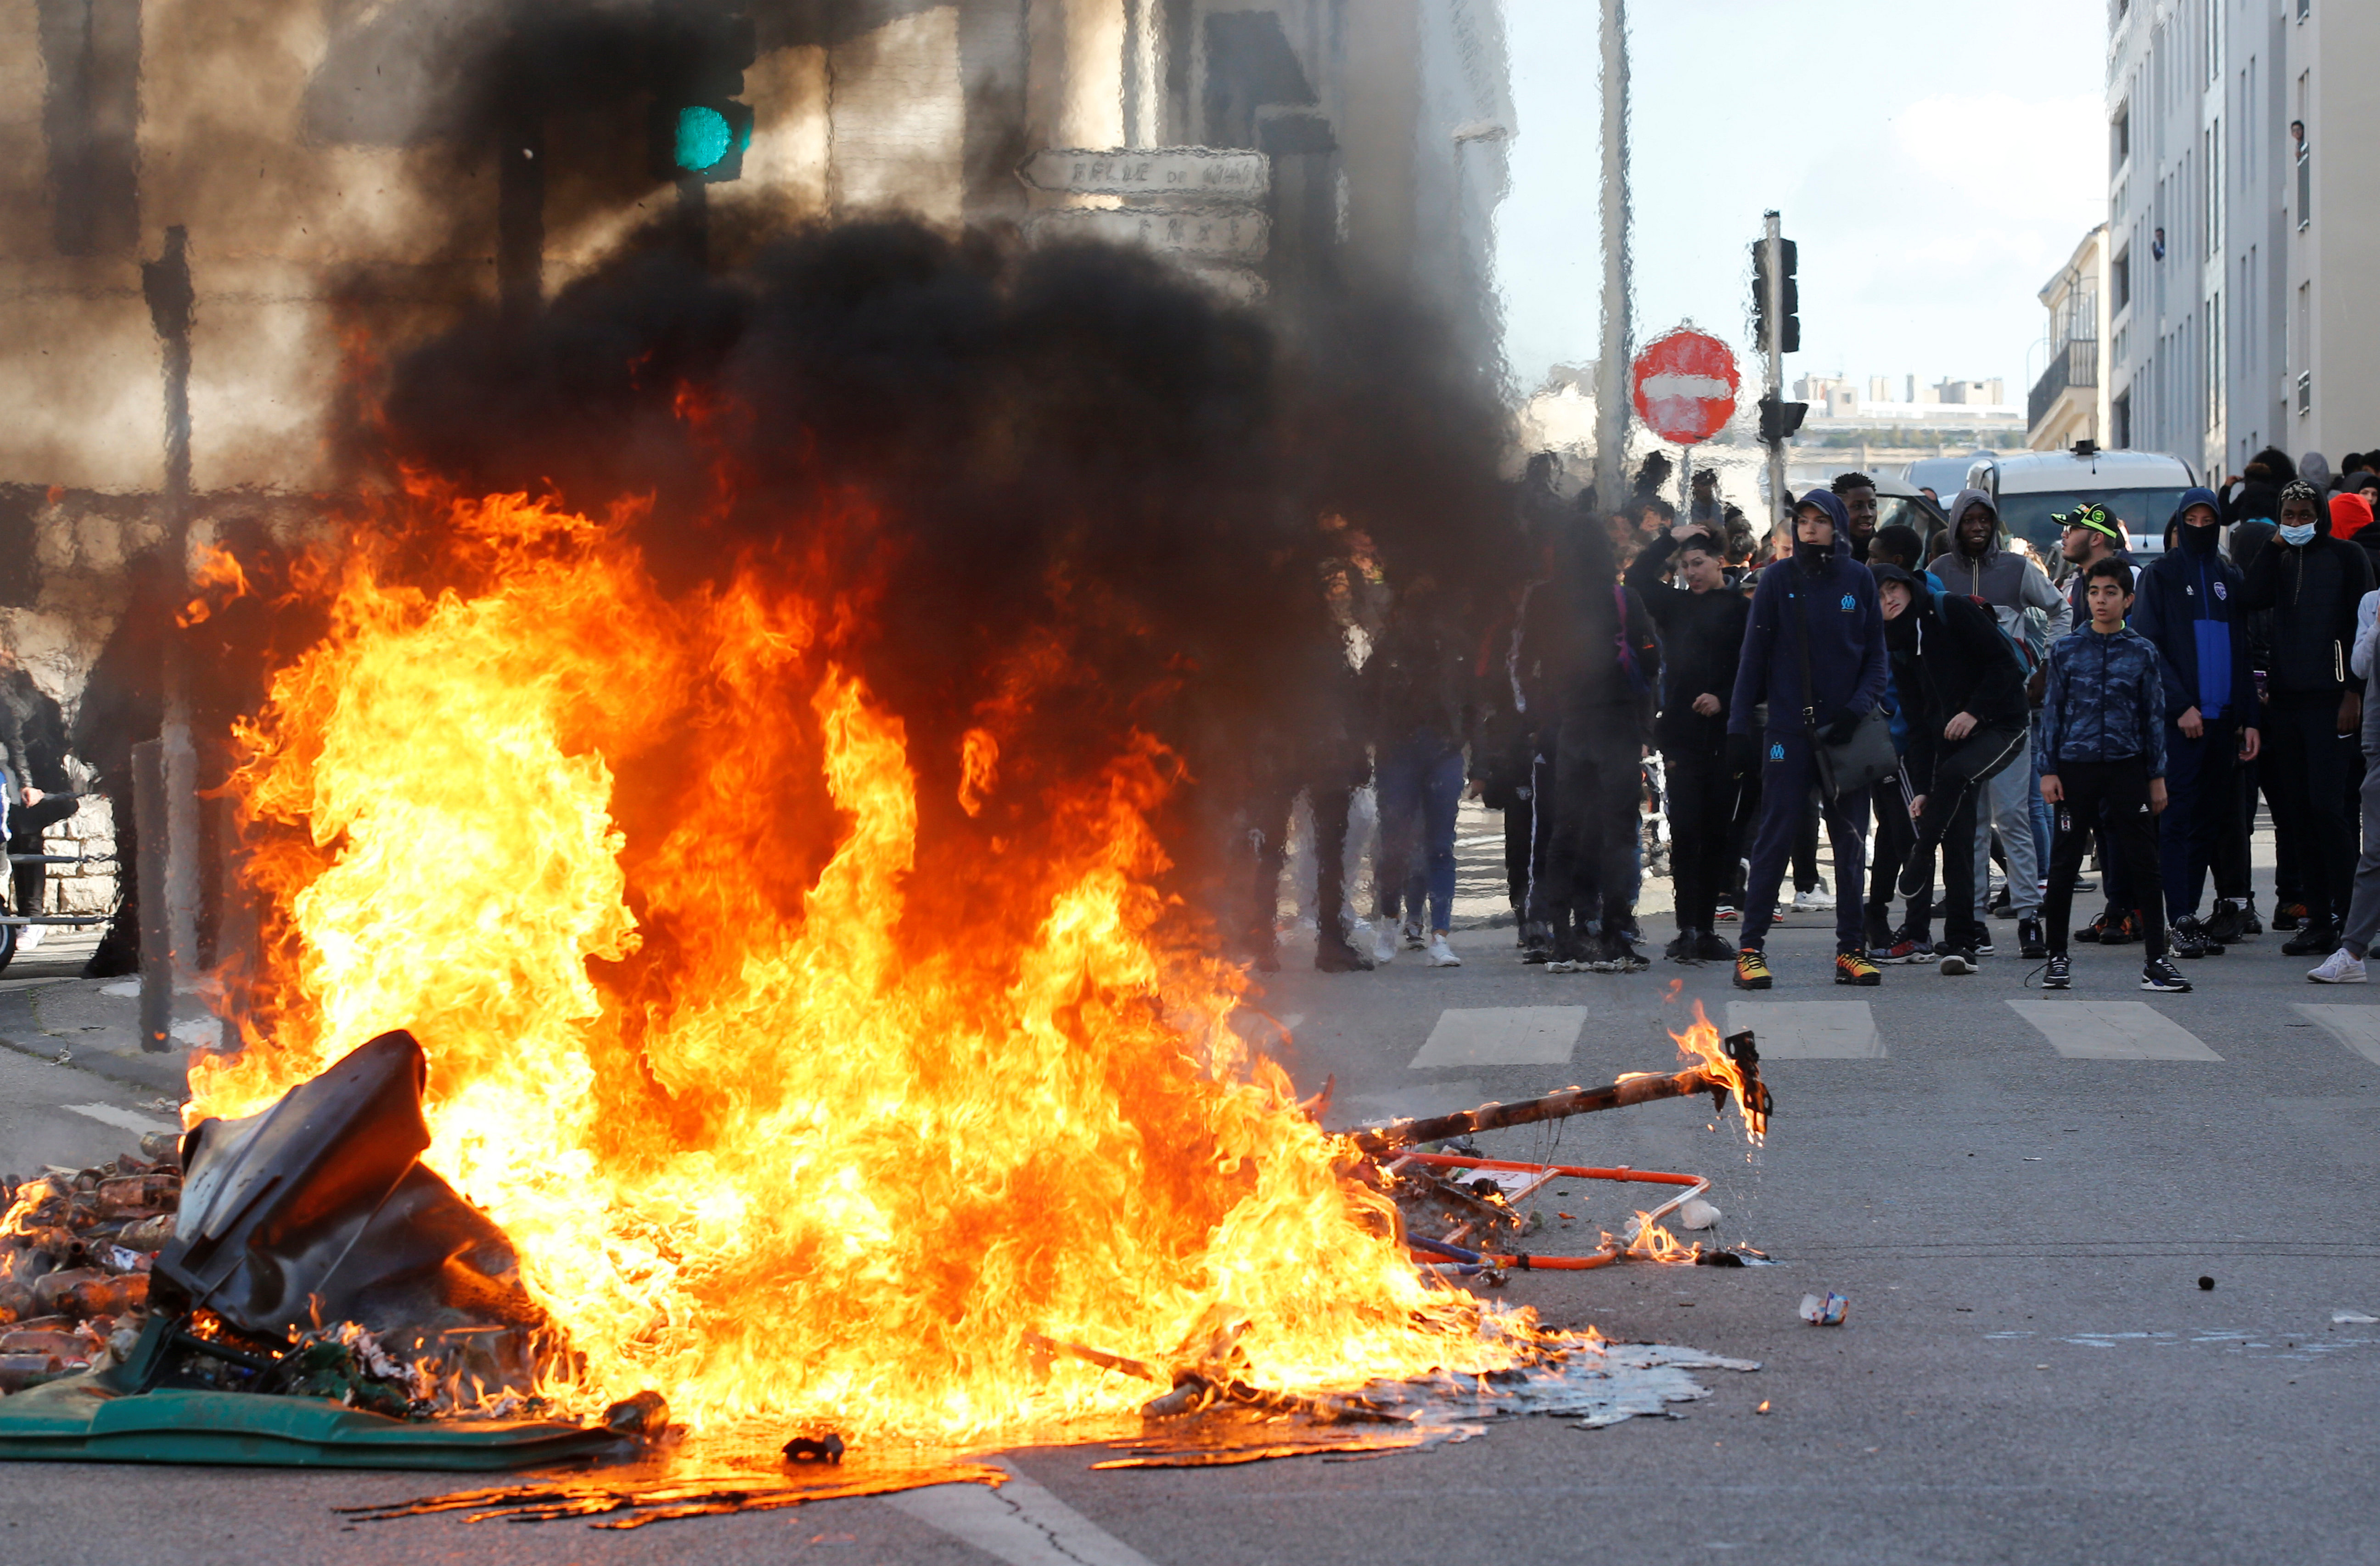 Trash bins burn as youths and high-school students clash with police during a demonstration against the French government's reform plan in Marseille, France, December 6, 2018.  REUTERS/Jean-Paul Pelissier - RC1468780510